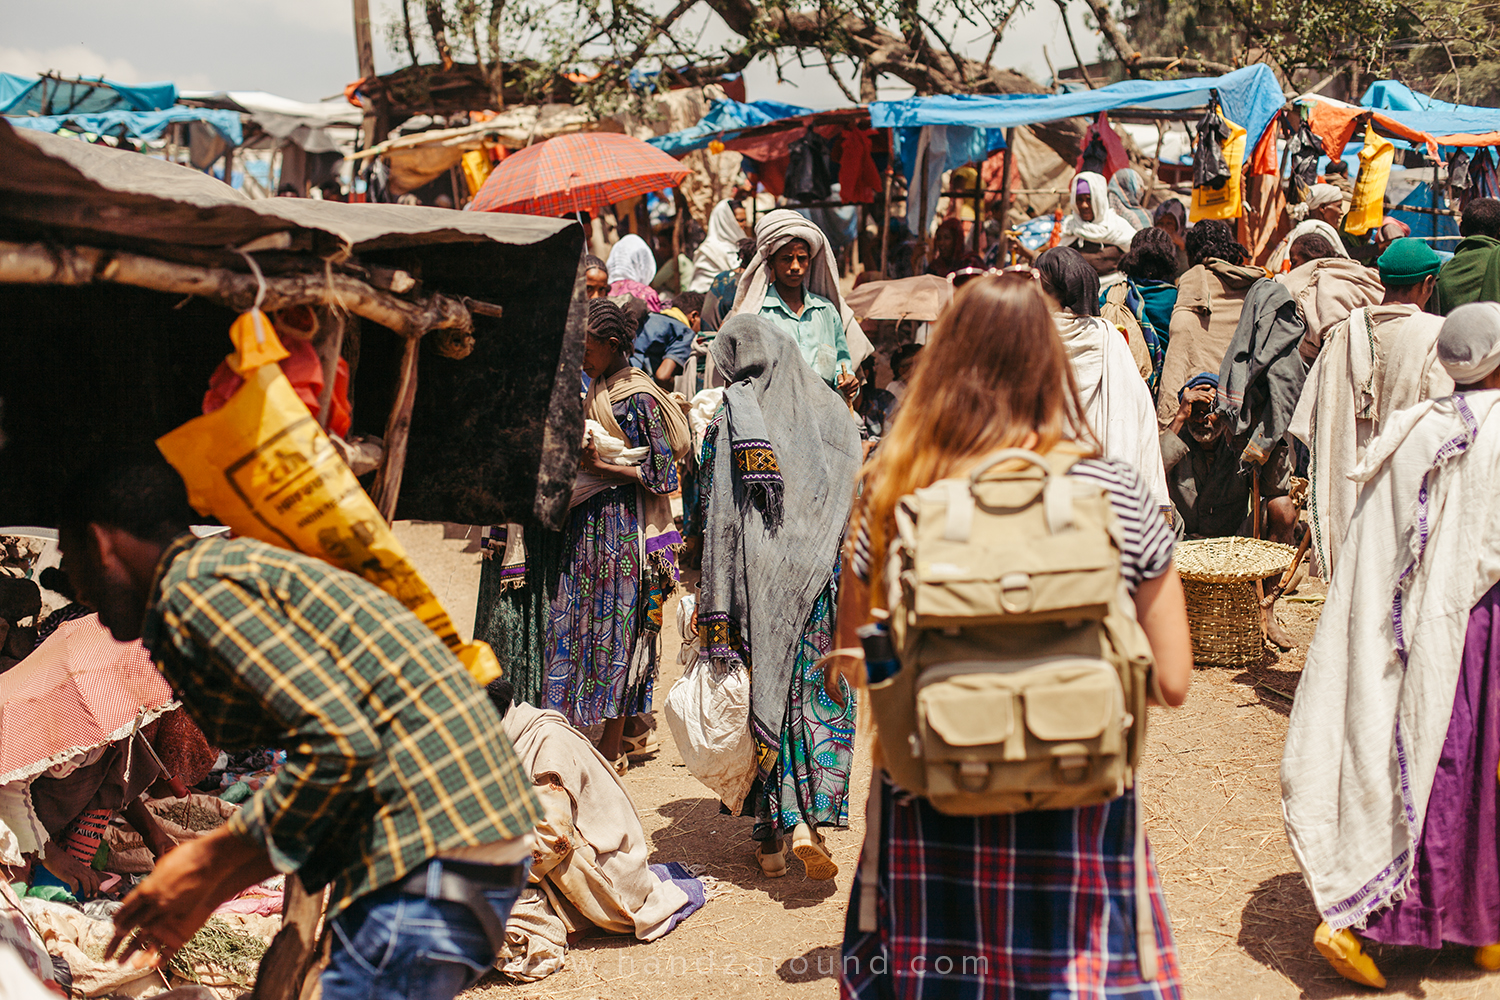 Walking around the Saturday market in Lalibela